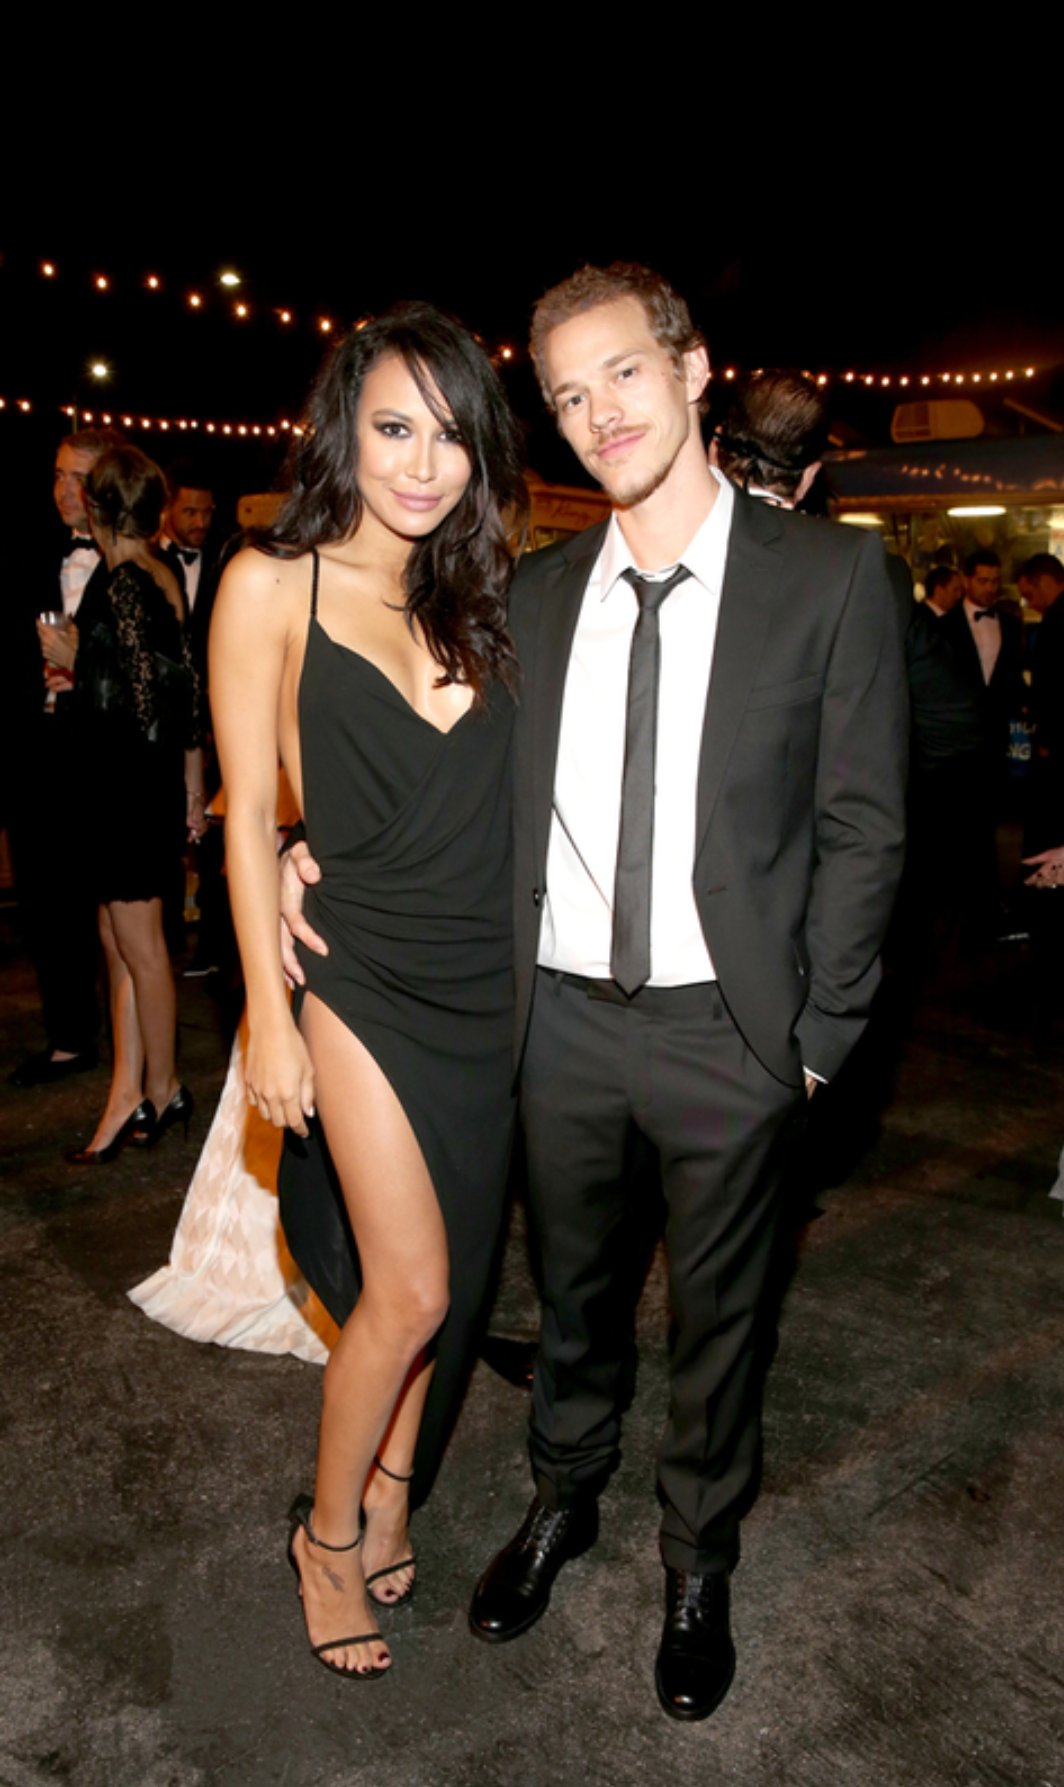 Naya Rivera files for divorce again from Ryan Dorsey after 3 years of marriage